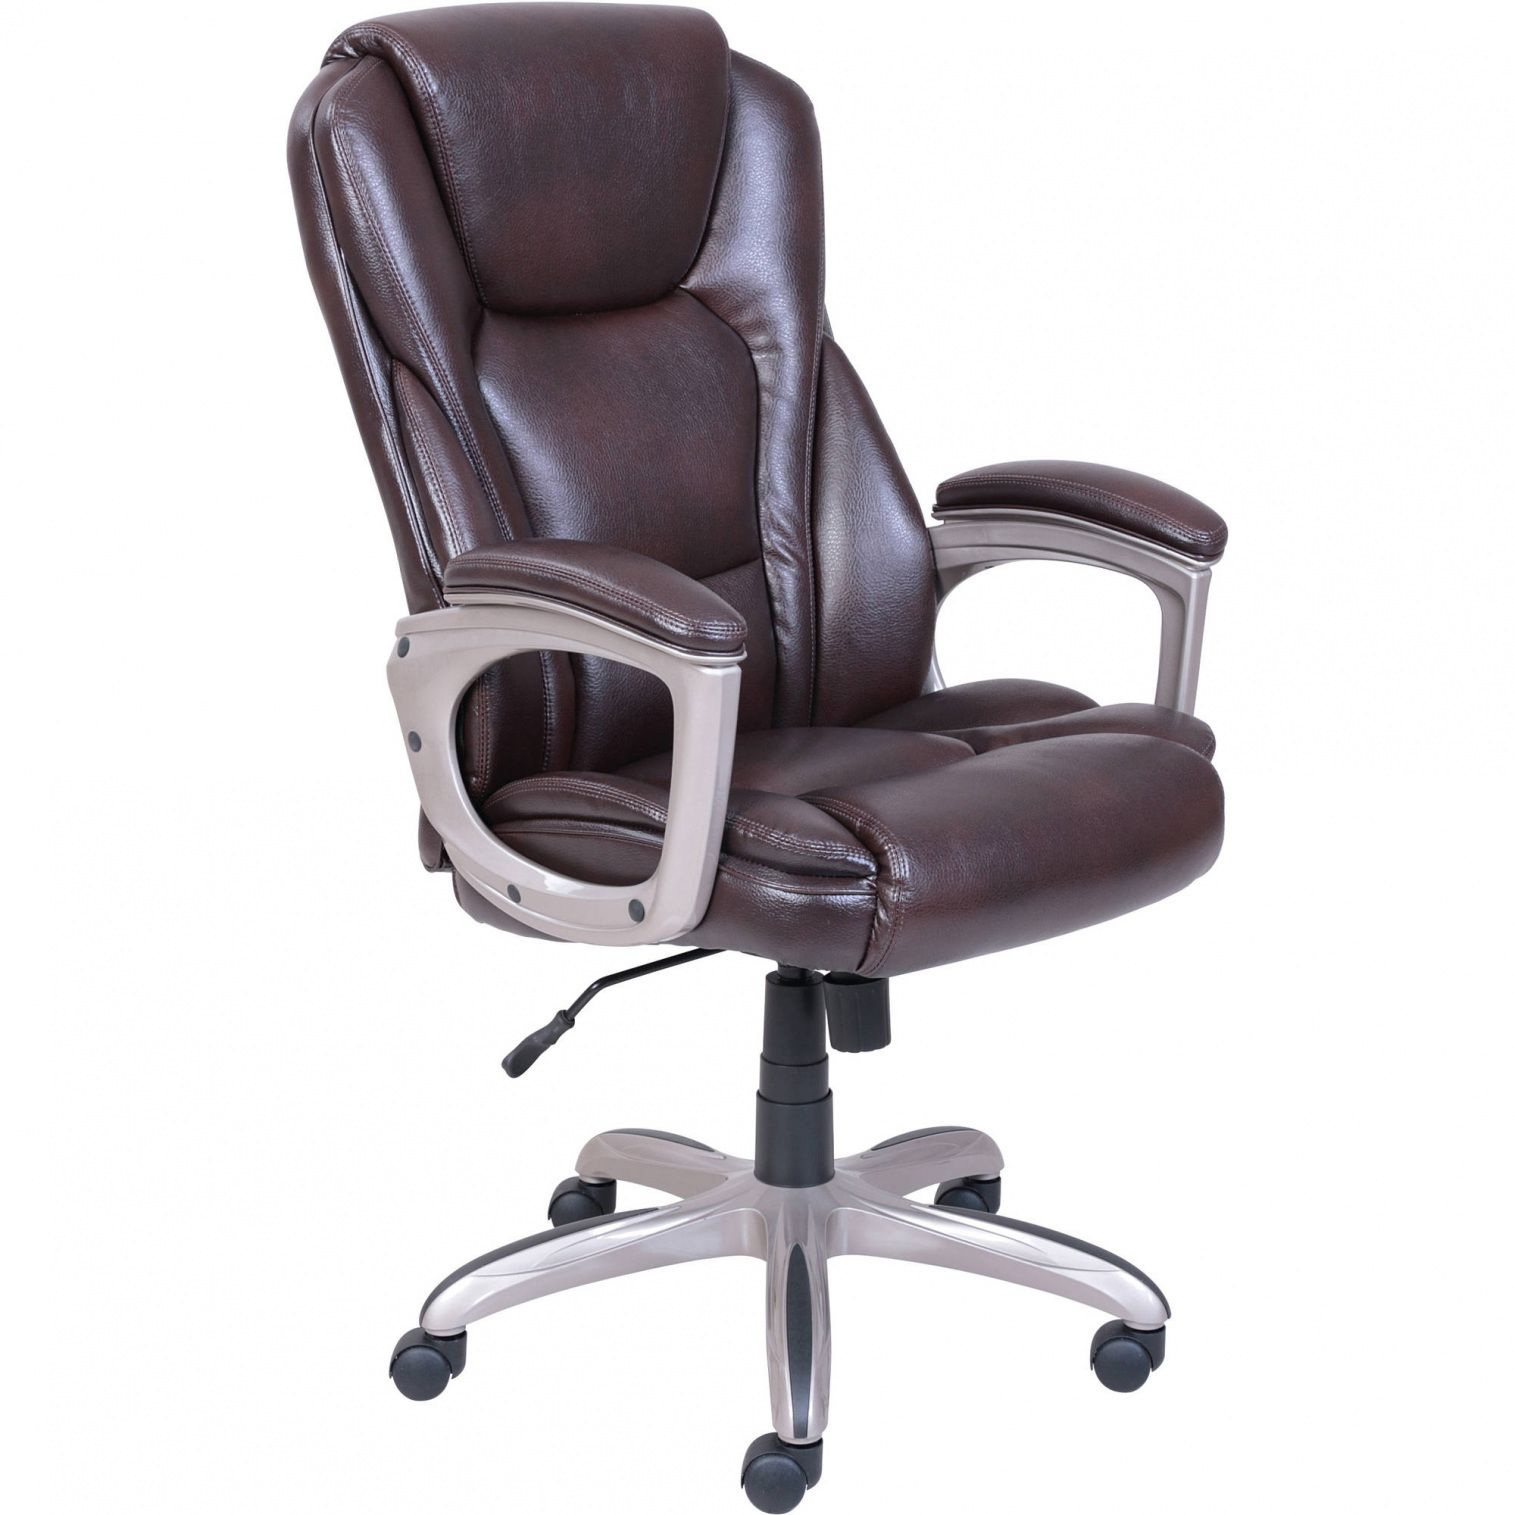 Broyhill Desk Chair Ideas For Decorating A Desk Leather Office